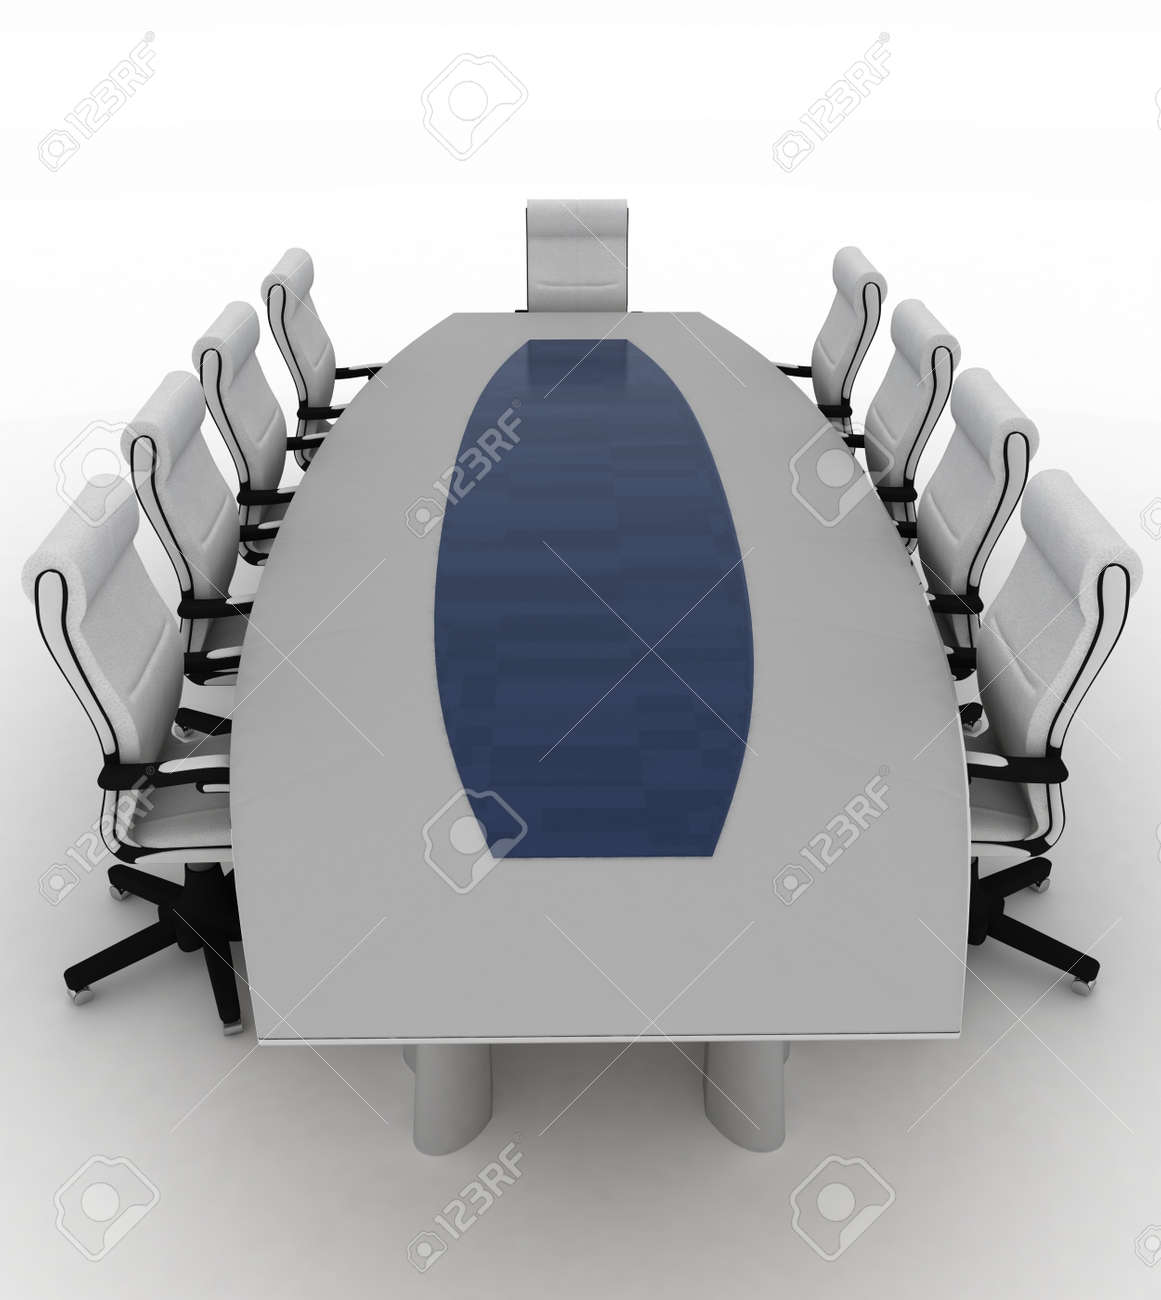 Conference Table with empty chairs for modern office. Stock Photo - 17068786